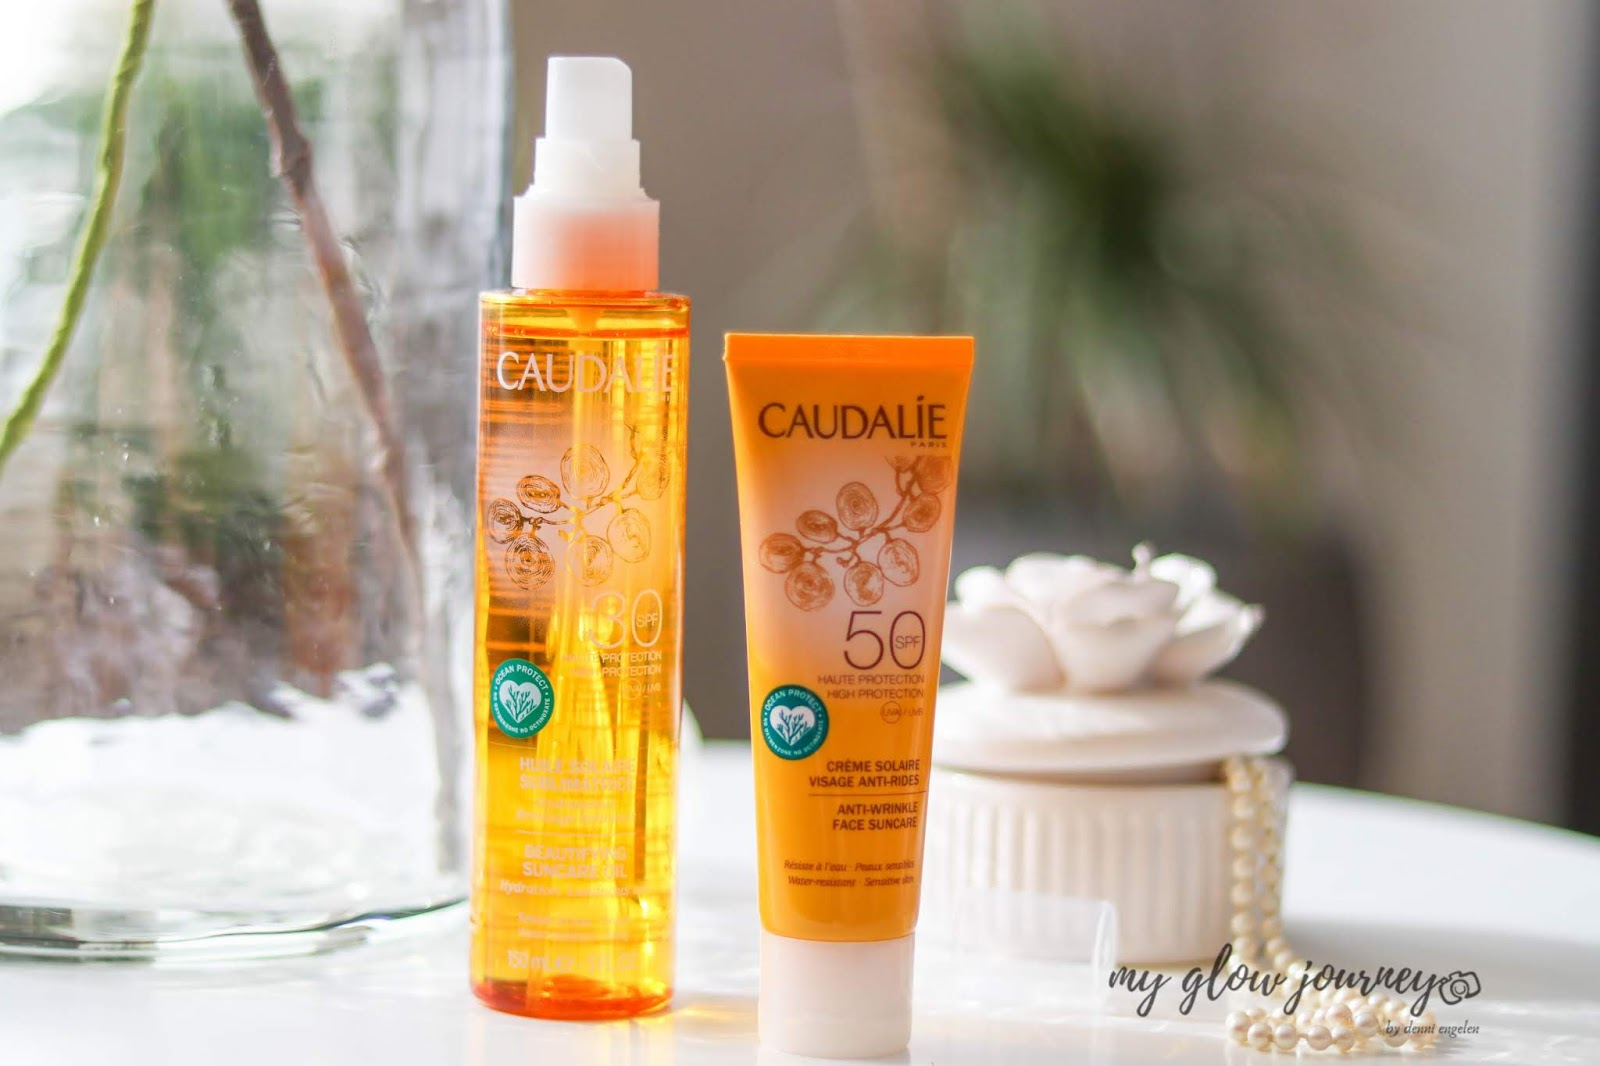 Caudalie Anti-wrinkle Face Suncare SPF50 | Review